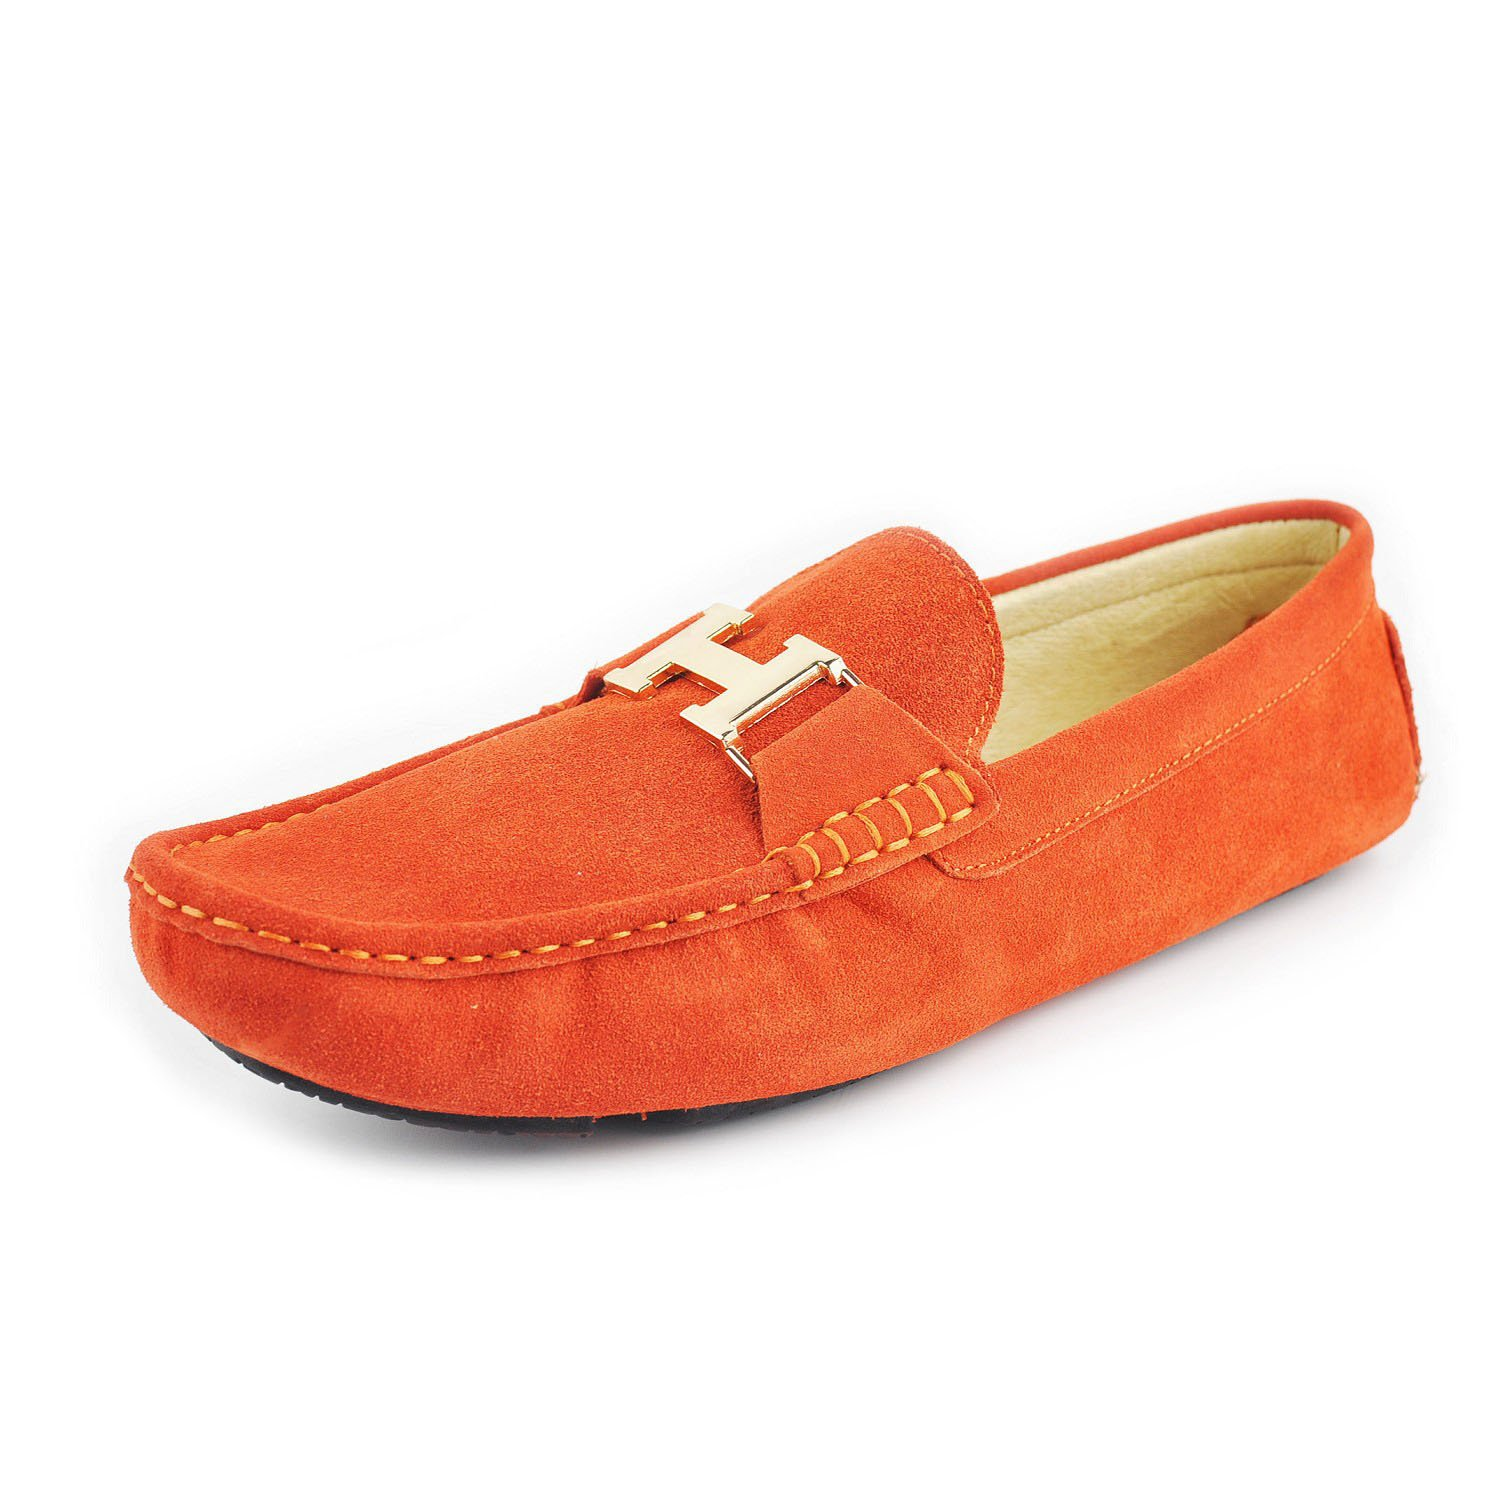 3a61ee7873b Fulinken Men s Moccasin Orange Slip on Buckle Leather Loafers Causal Mens  Shoes Business Shoes Car Shoes (10